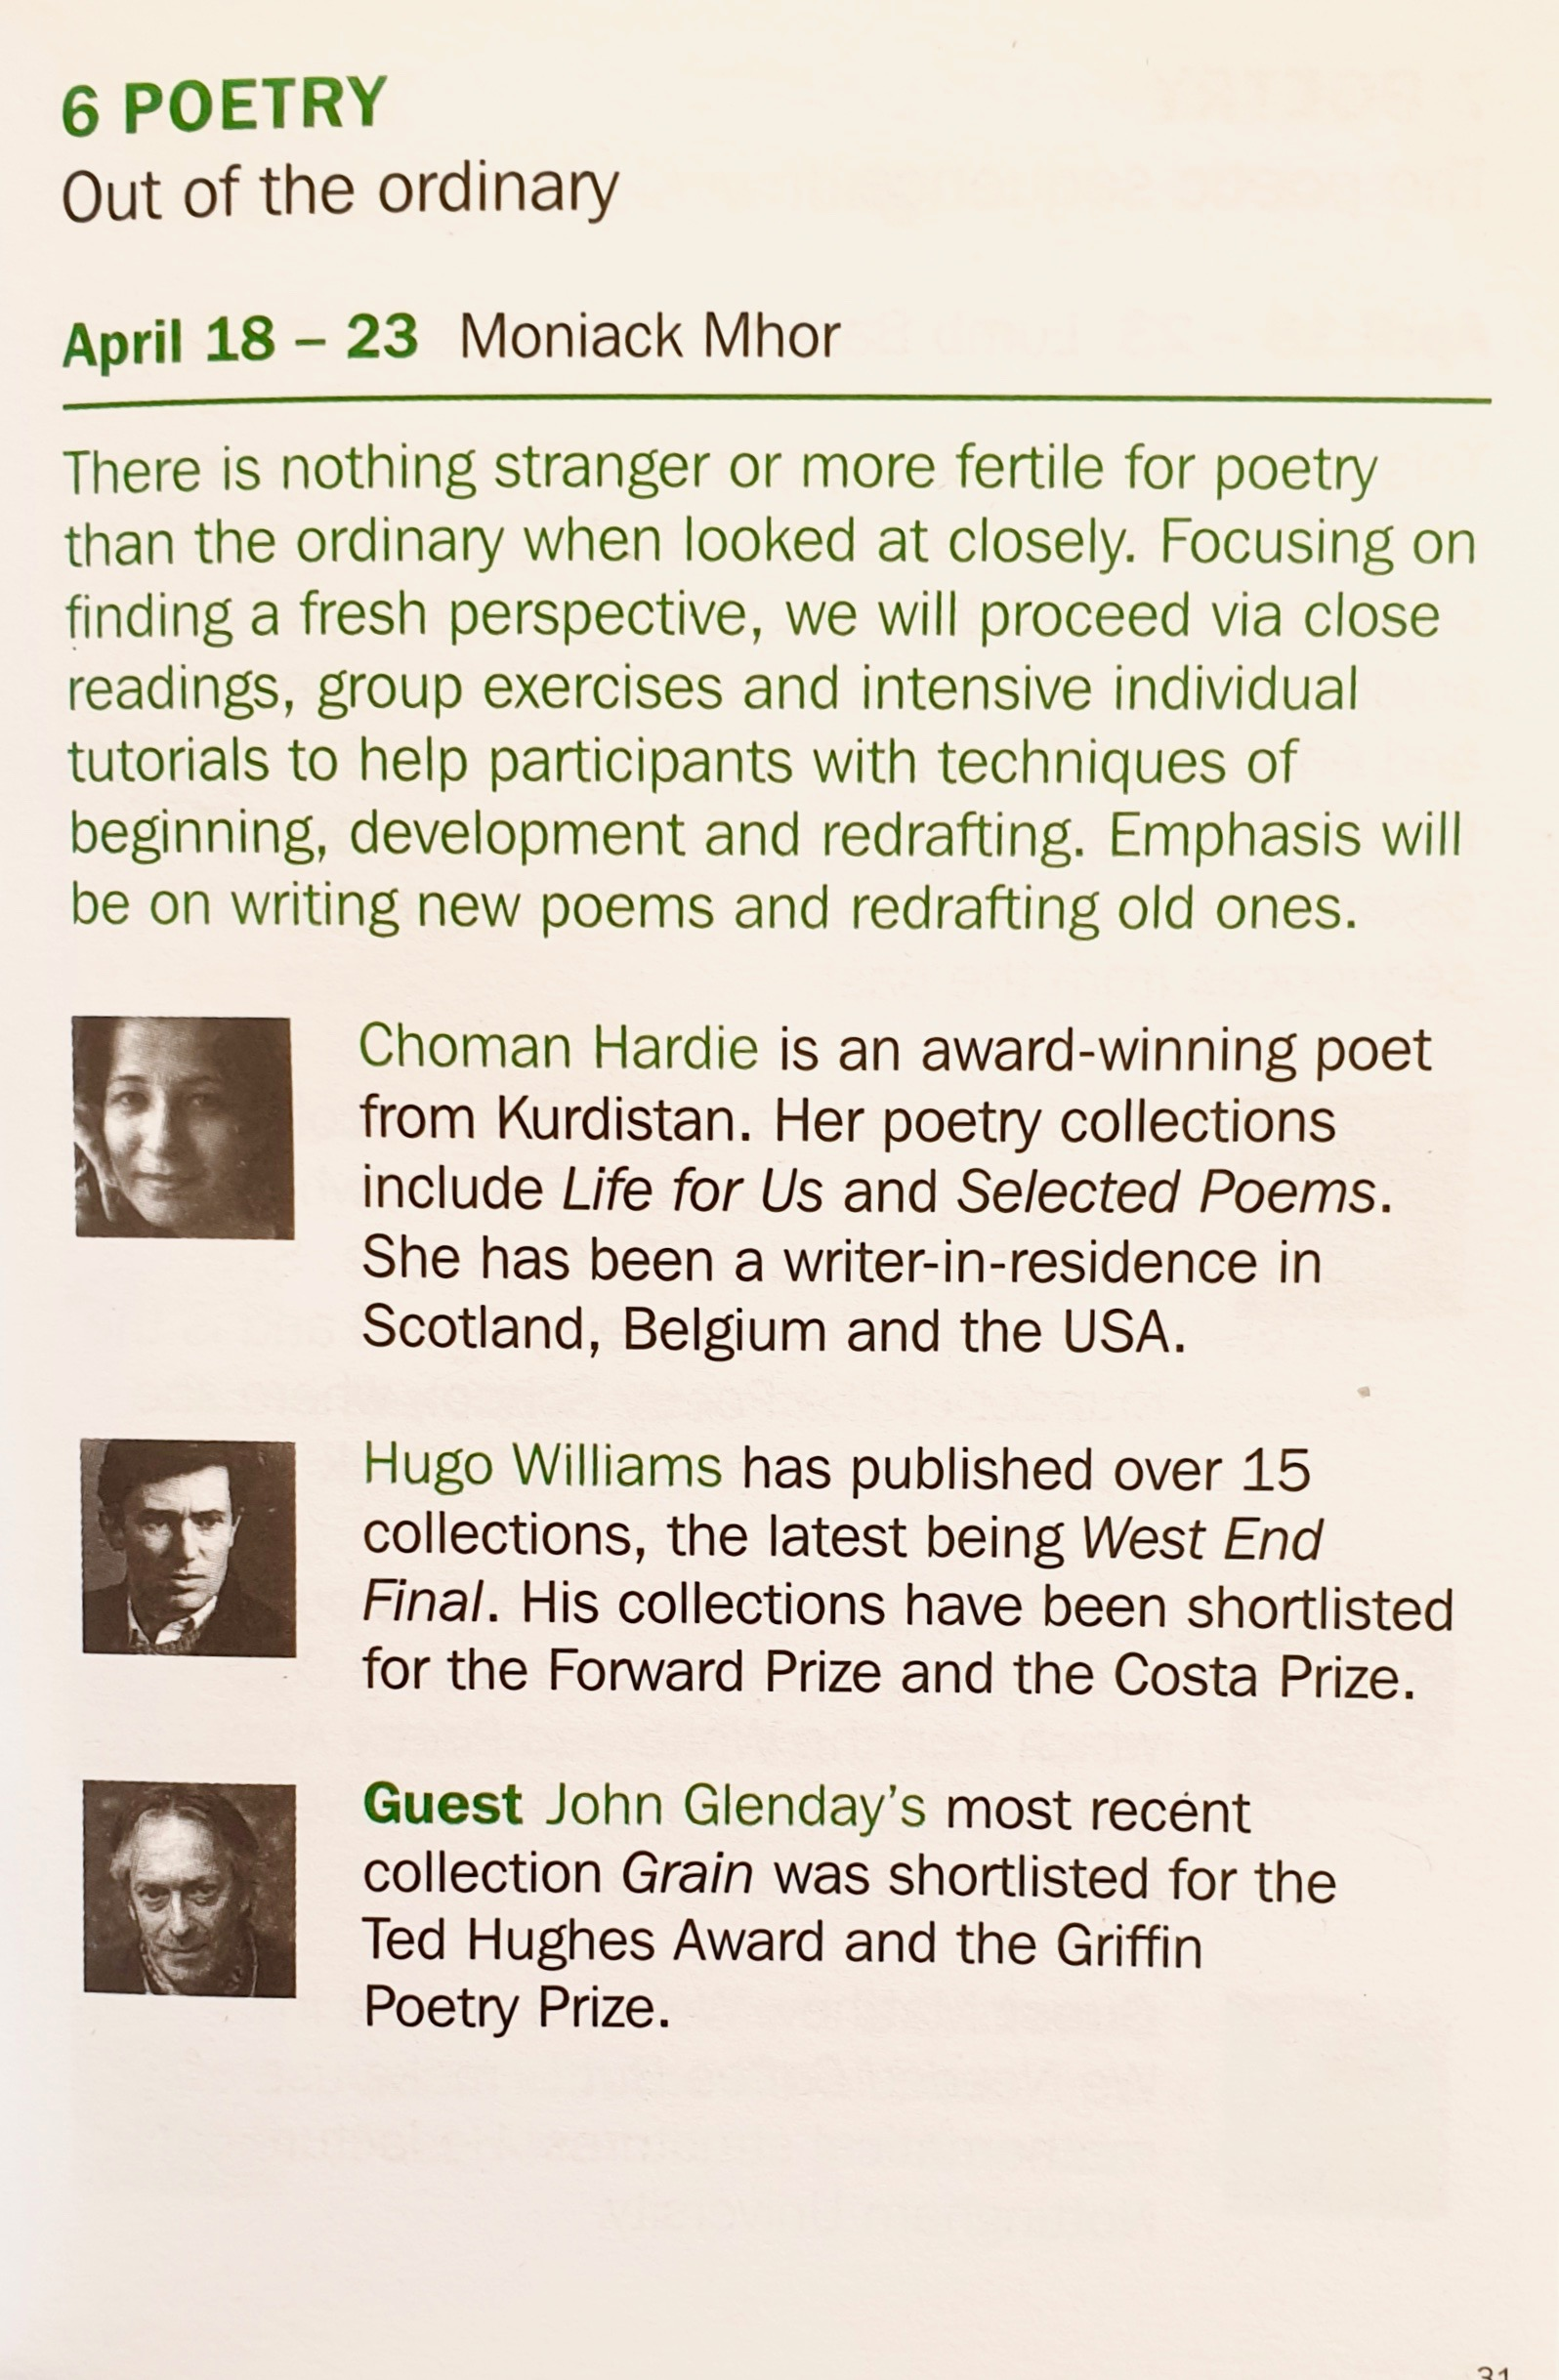 Residential Poetry Writing Course with John Glenday